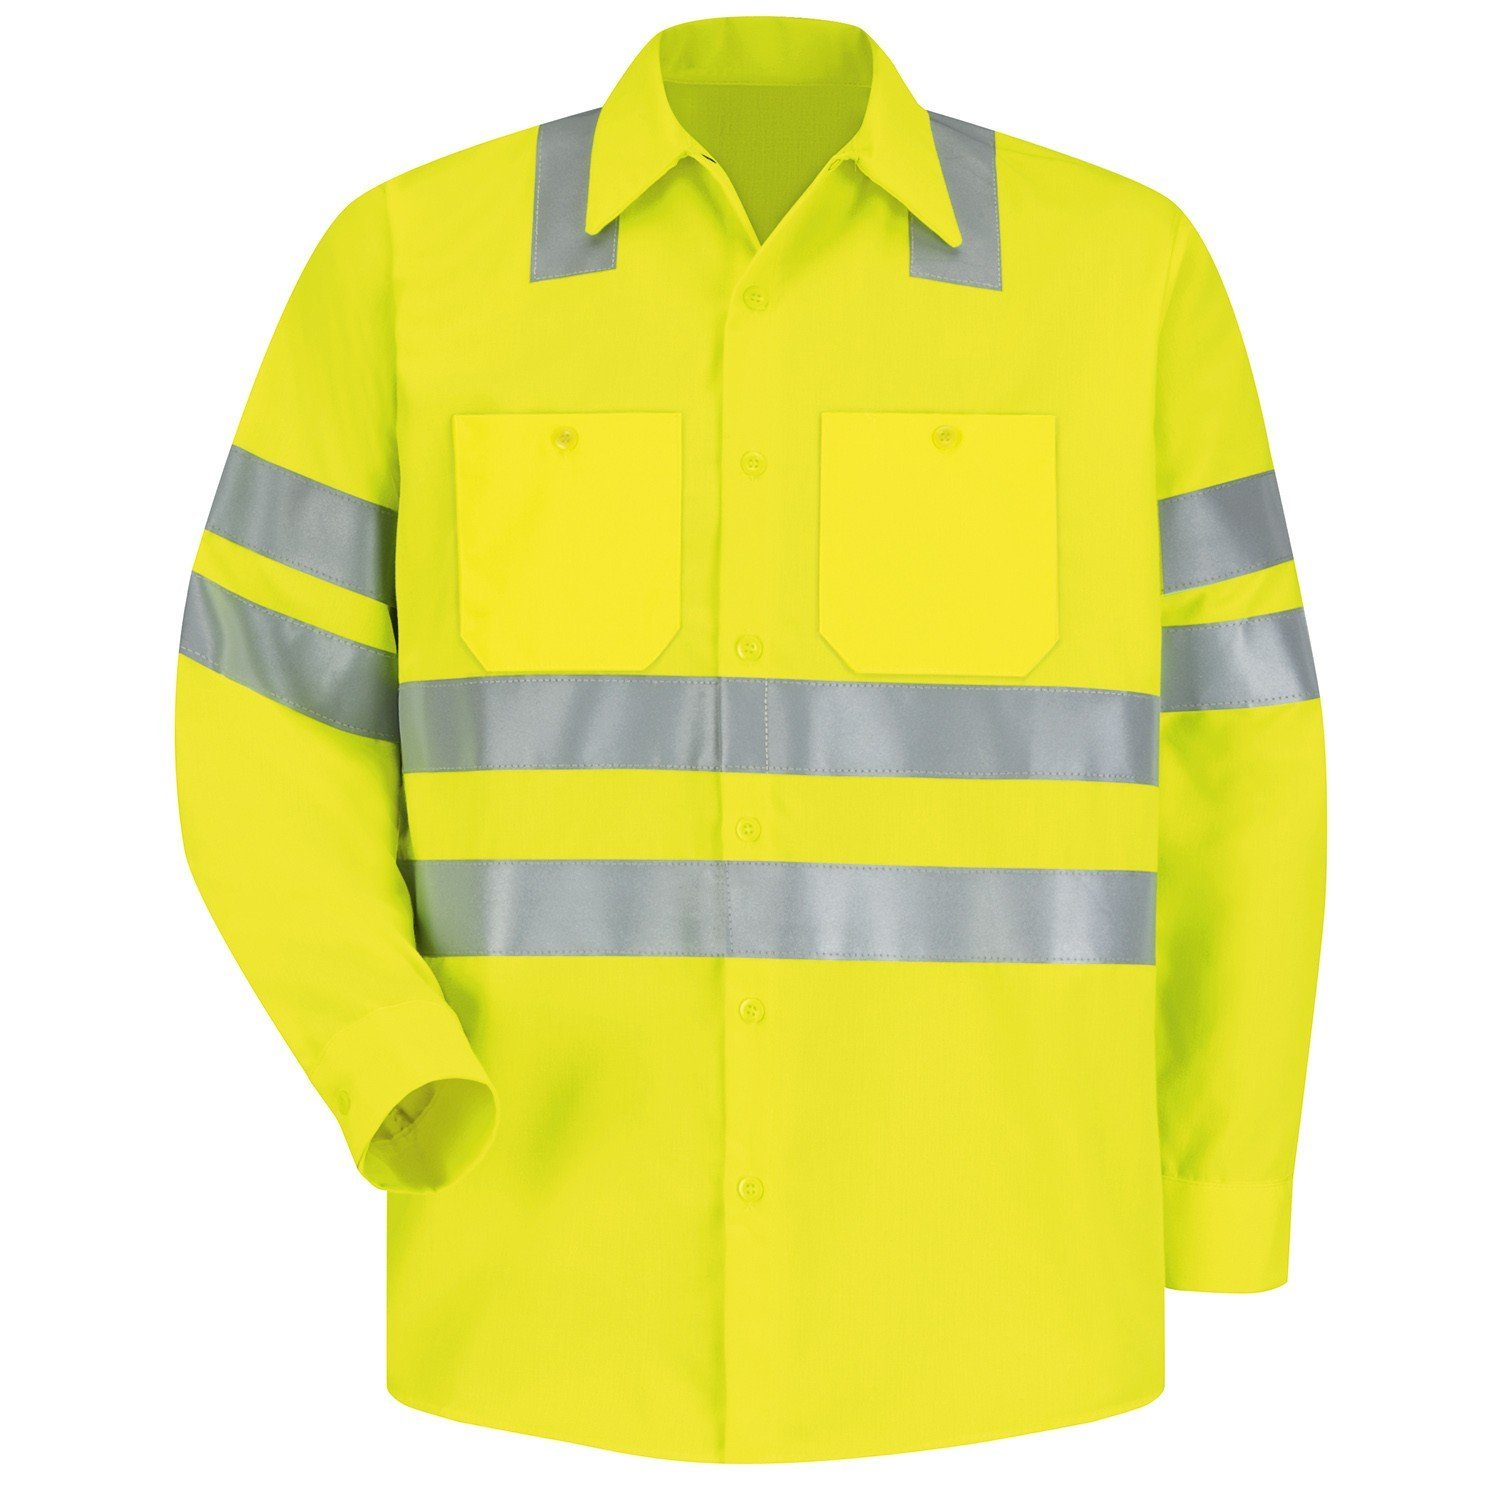 Brite Safety Style 240 Hi Vis Shirt Long Sleeve Safety Shirts With